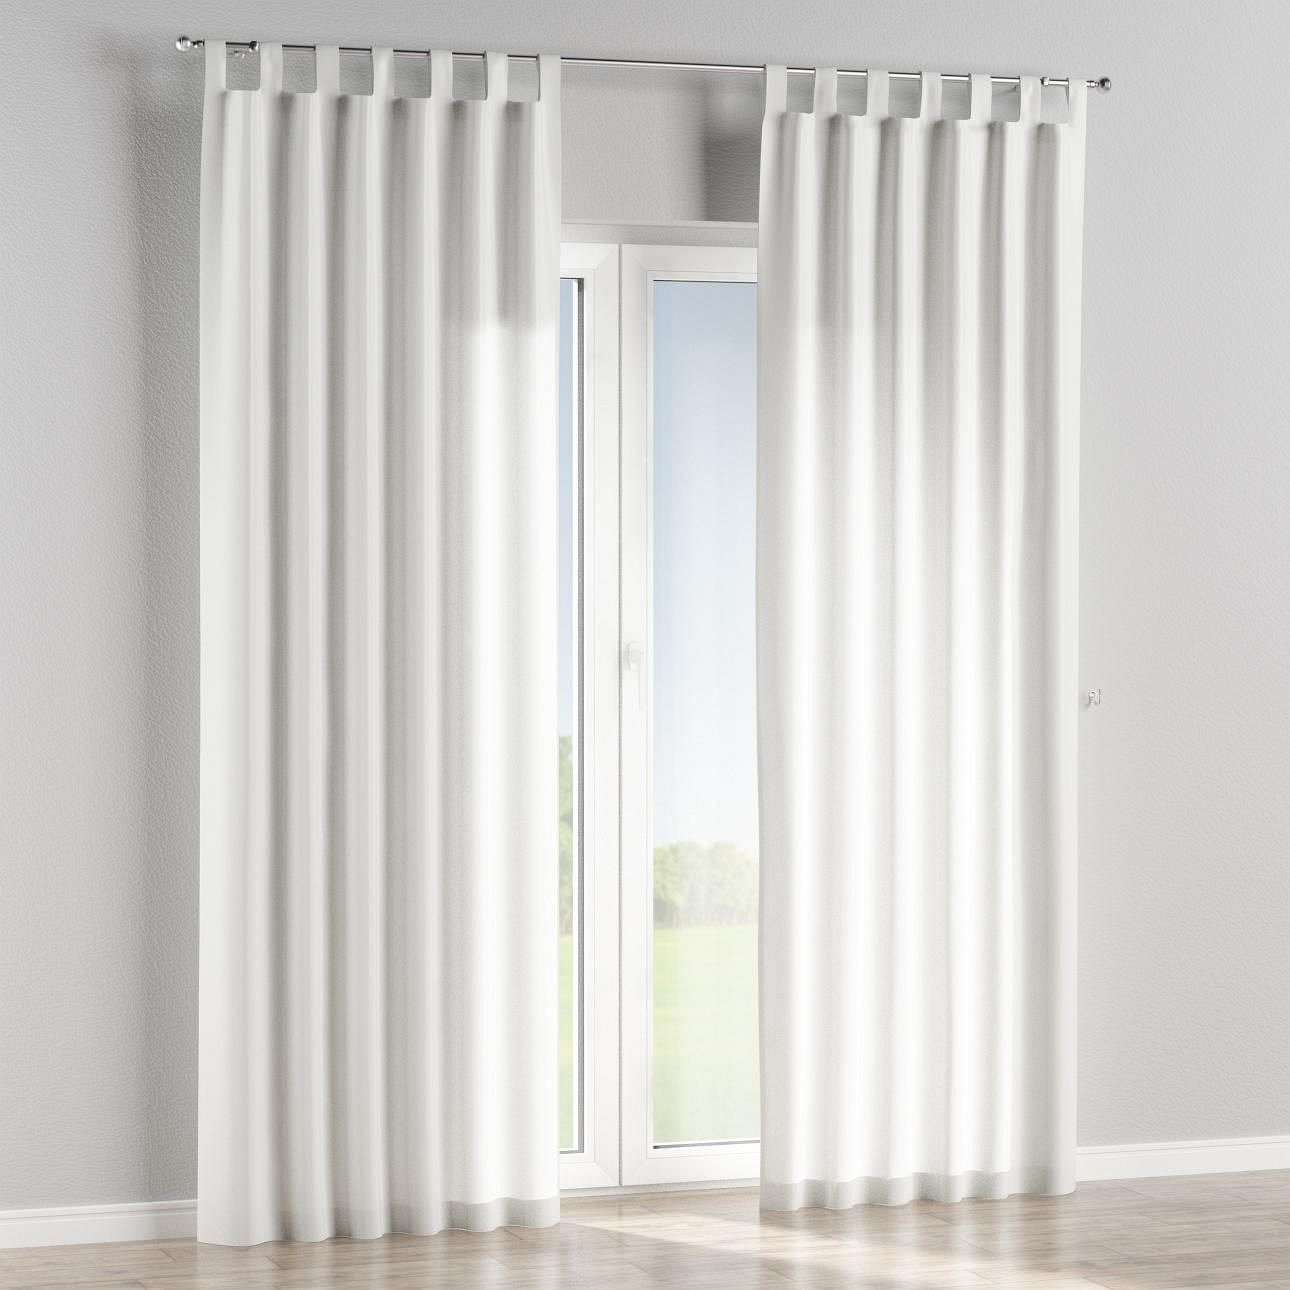 Tab top lined curtains in collection Bristol, fabric: 125-09